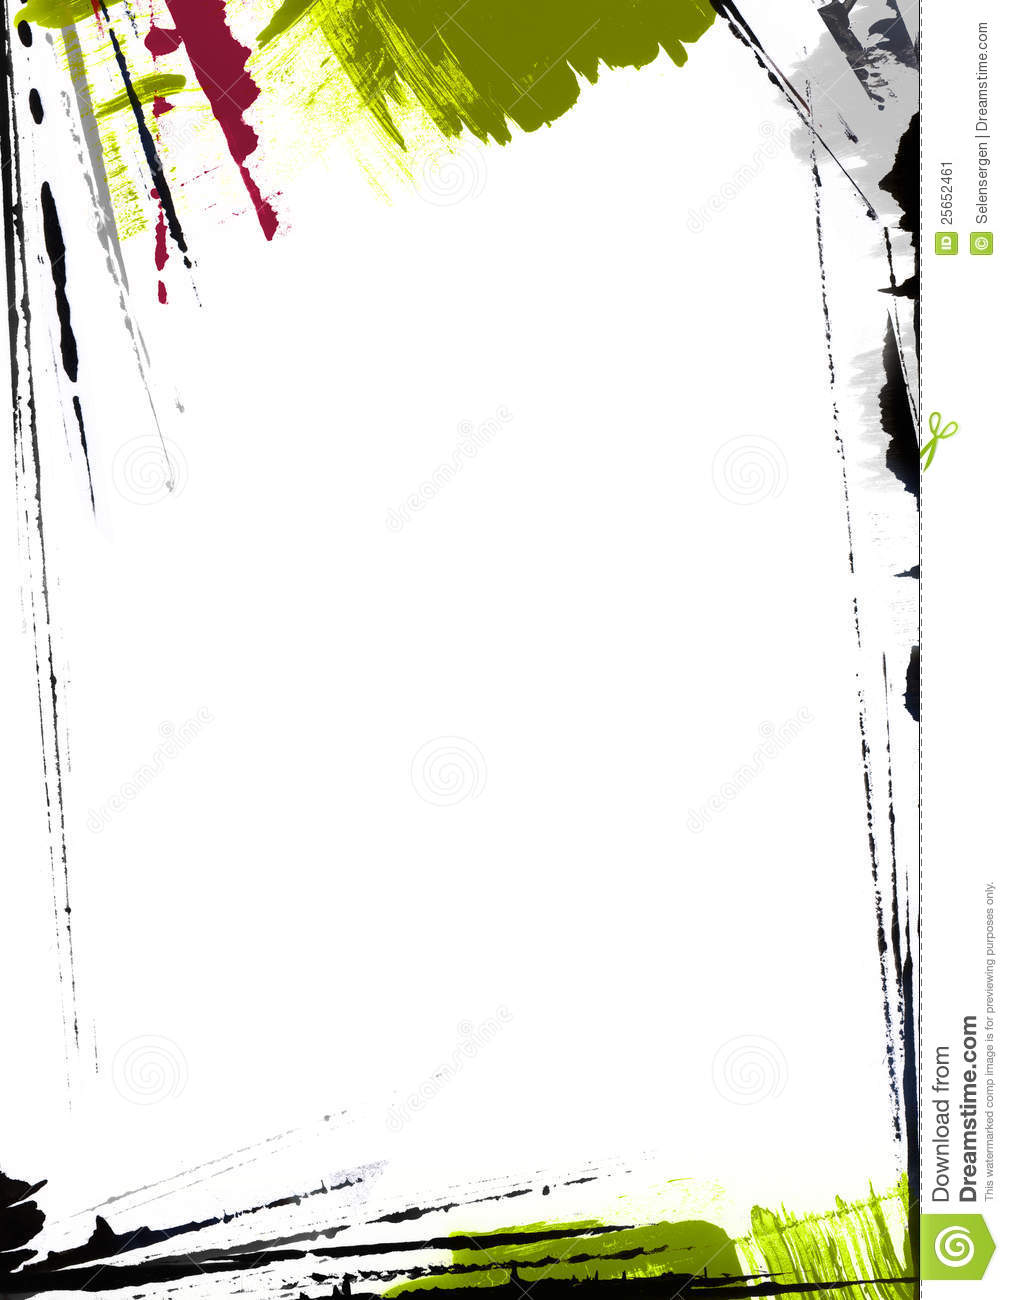 Page border painting stock illustration illustration of grunge page border painting grunge messy voltagebd Image collections